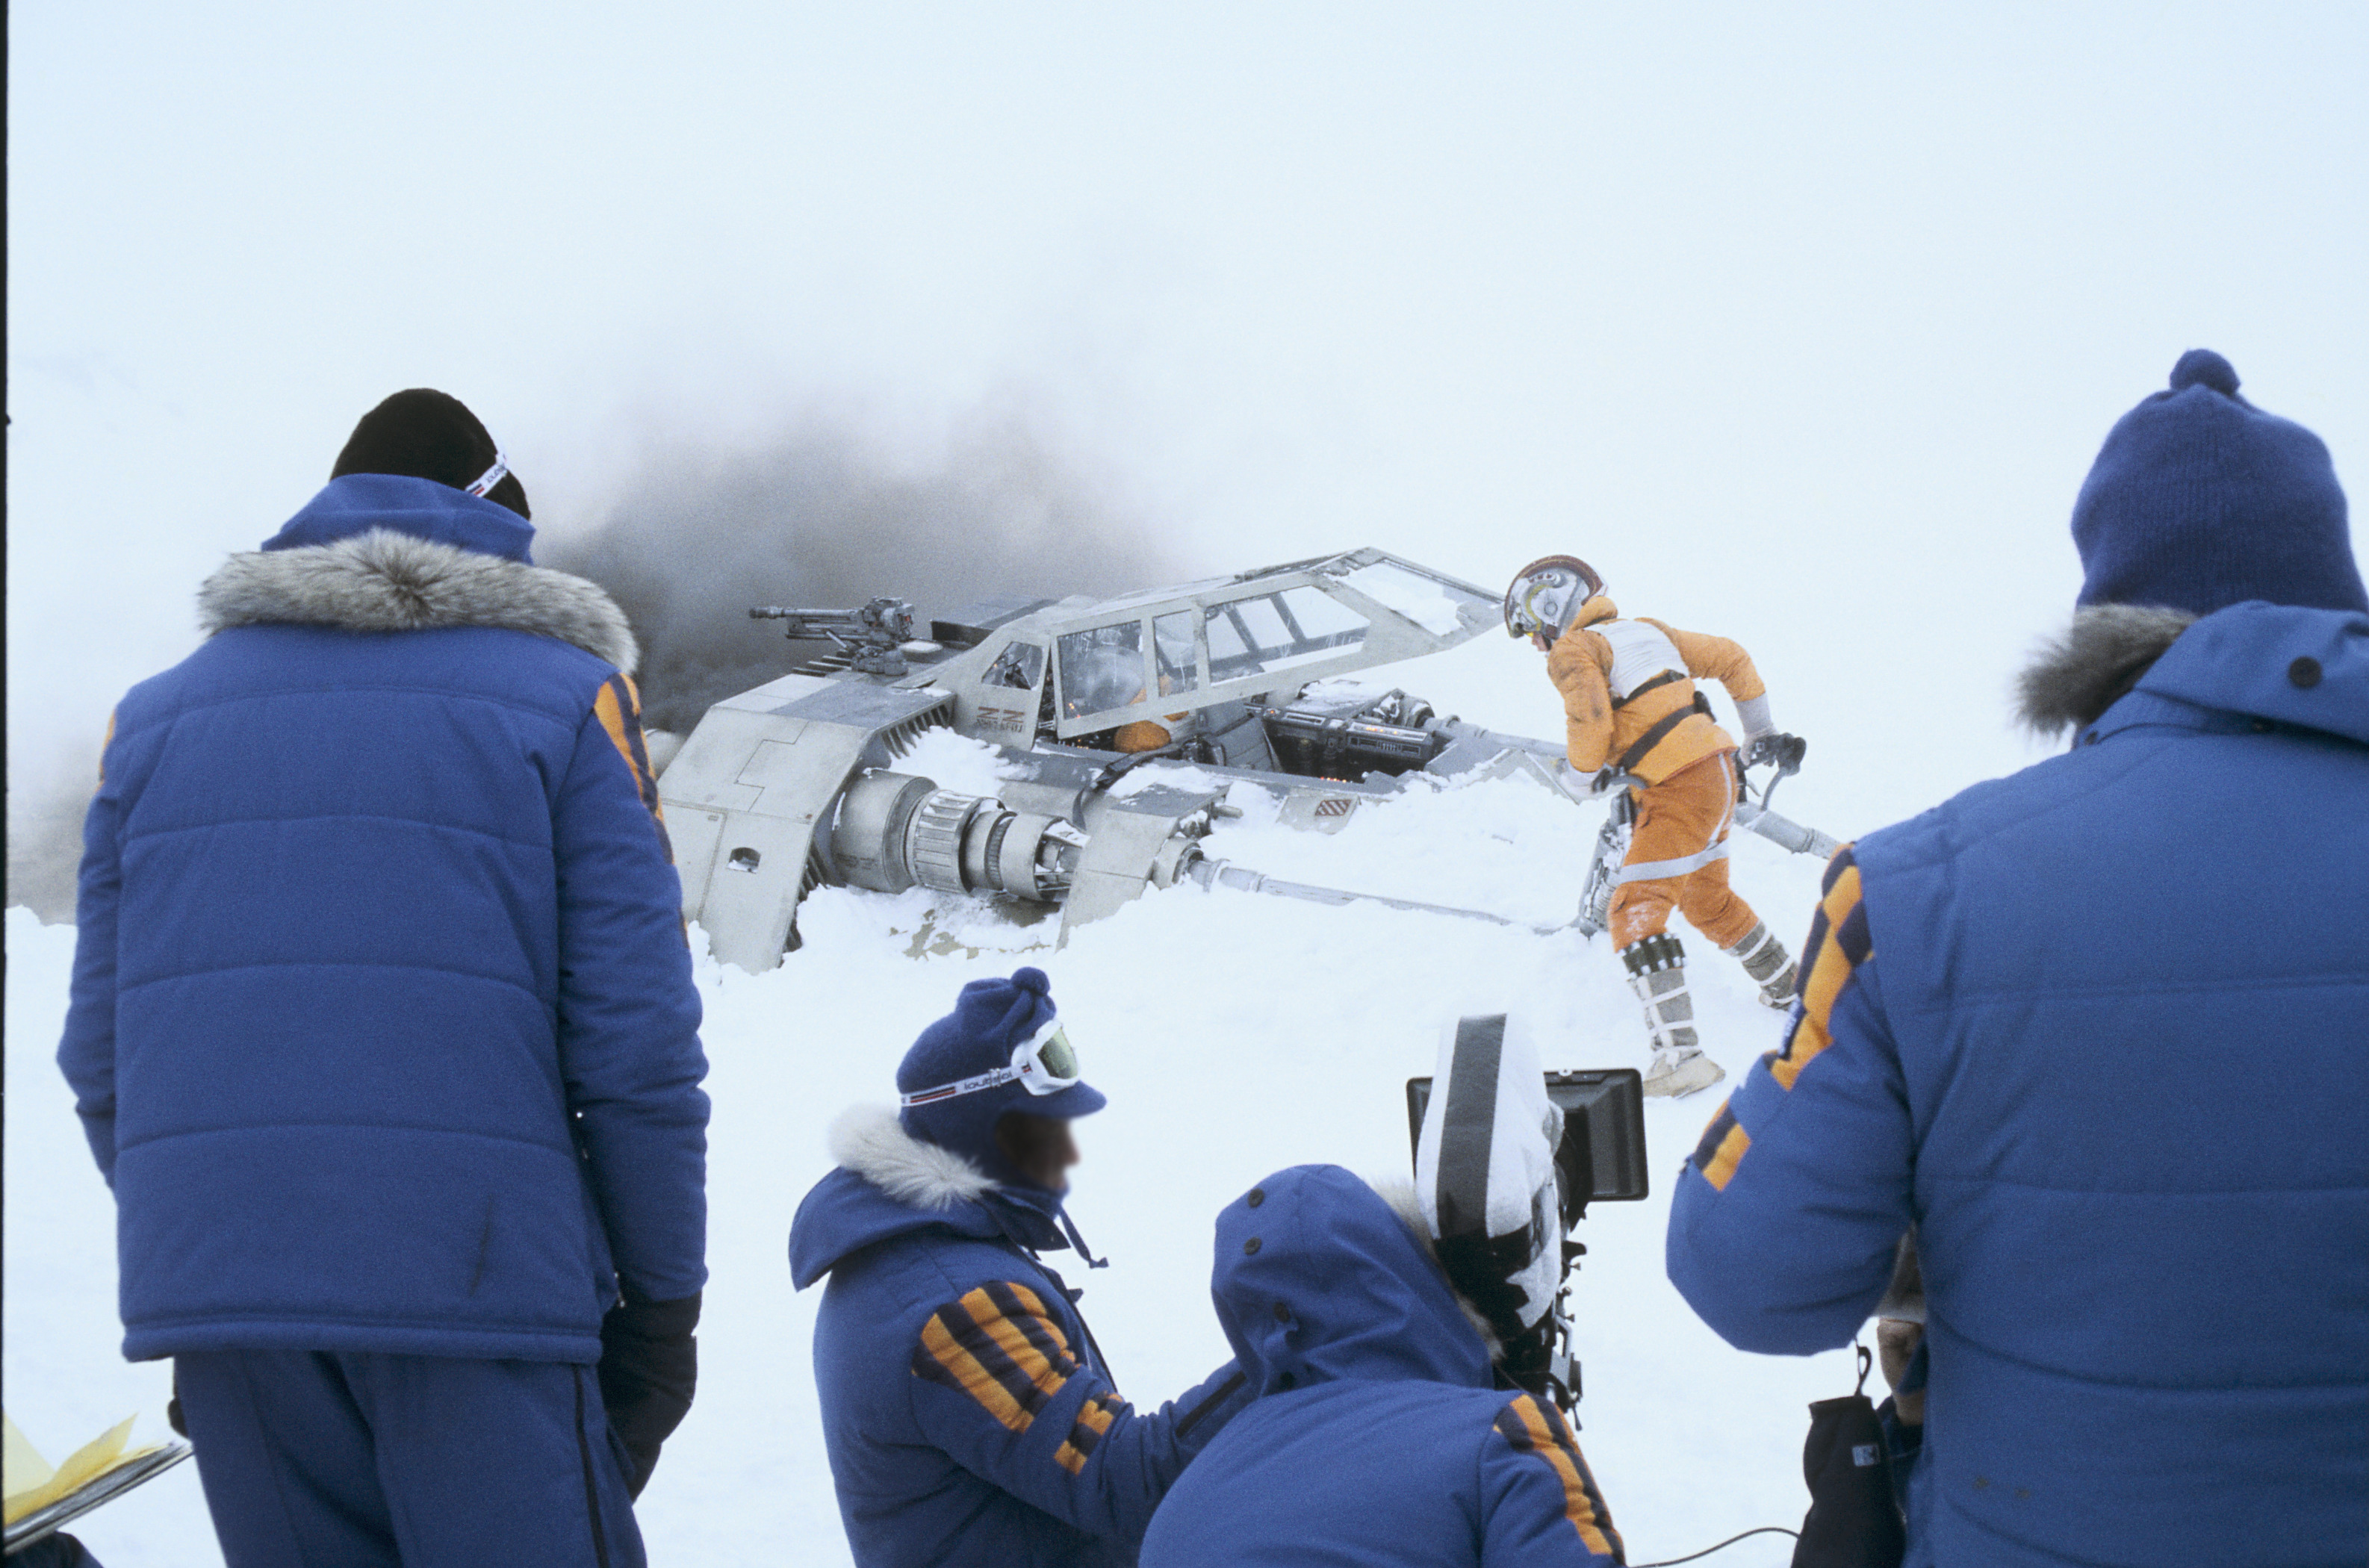 Bundle Up In Columbia S New Star Wars Parka Just Like Cast And Crew Wore For Empire Strikes Back Geekwire